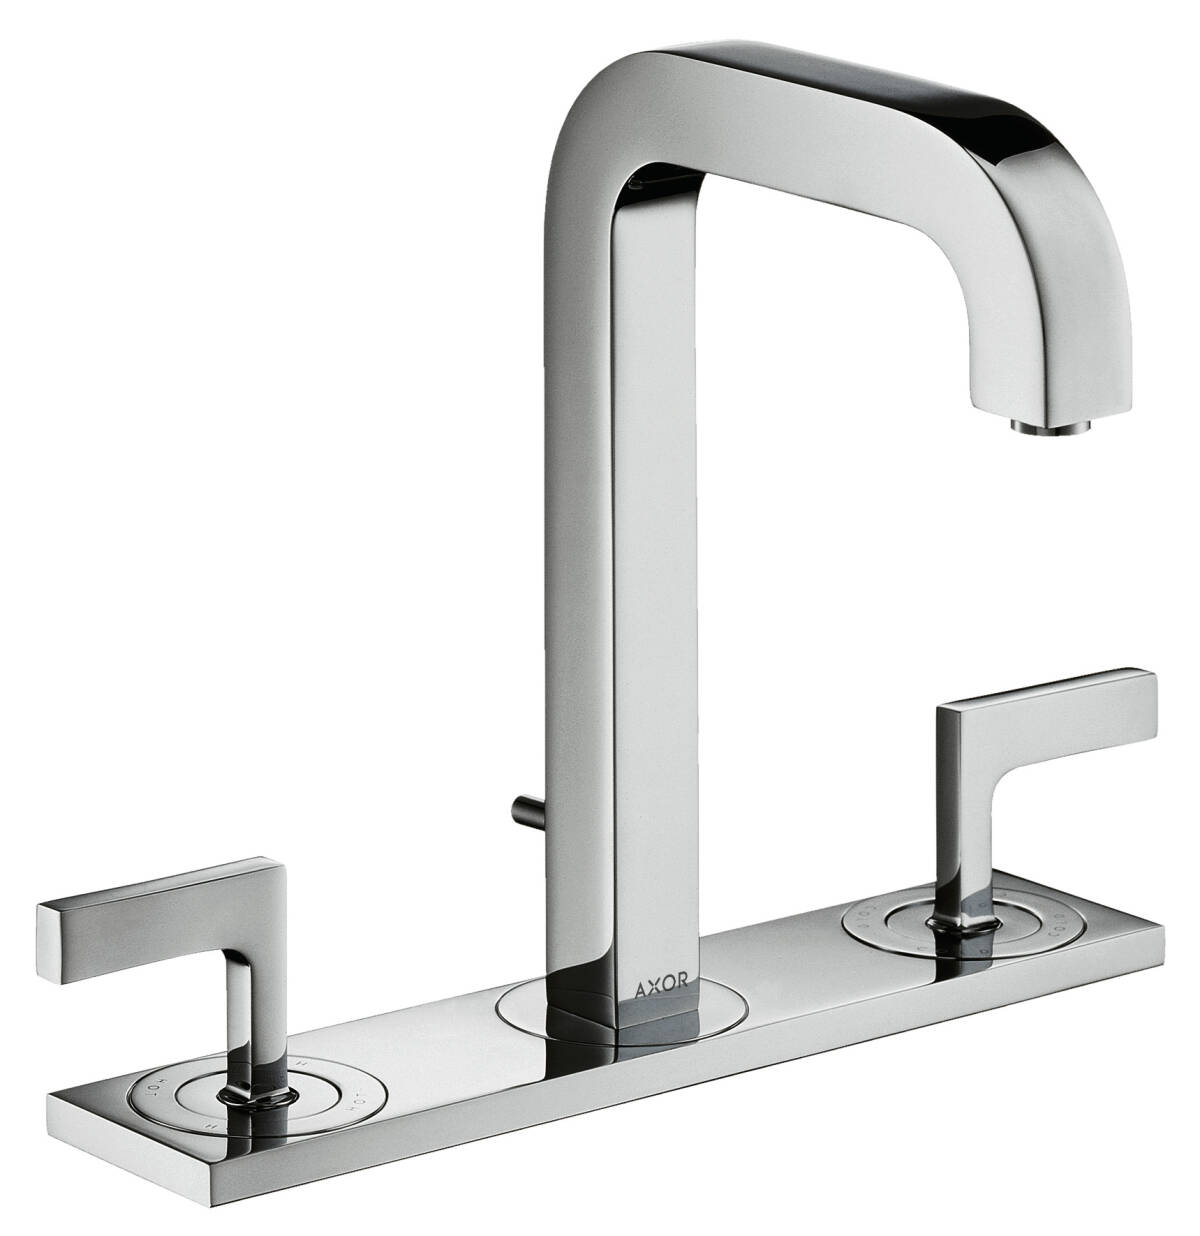 3-hole basin mixer 170 with spout 140 mm, lever handles, plate and pop-up waste set, Chrome, 39136000